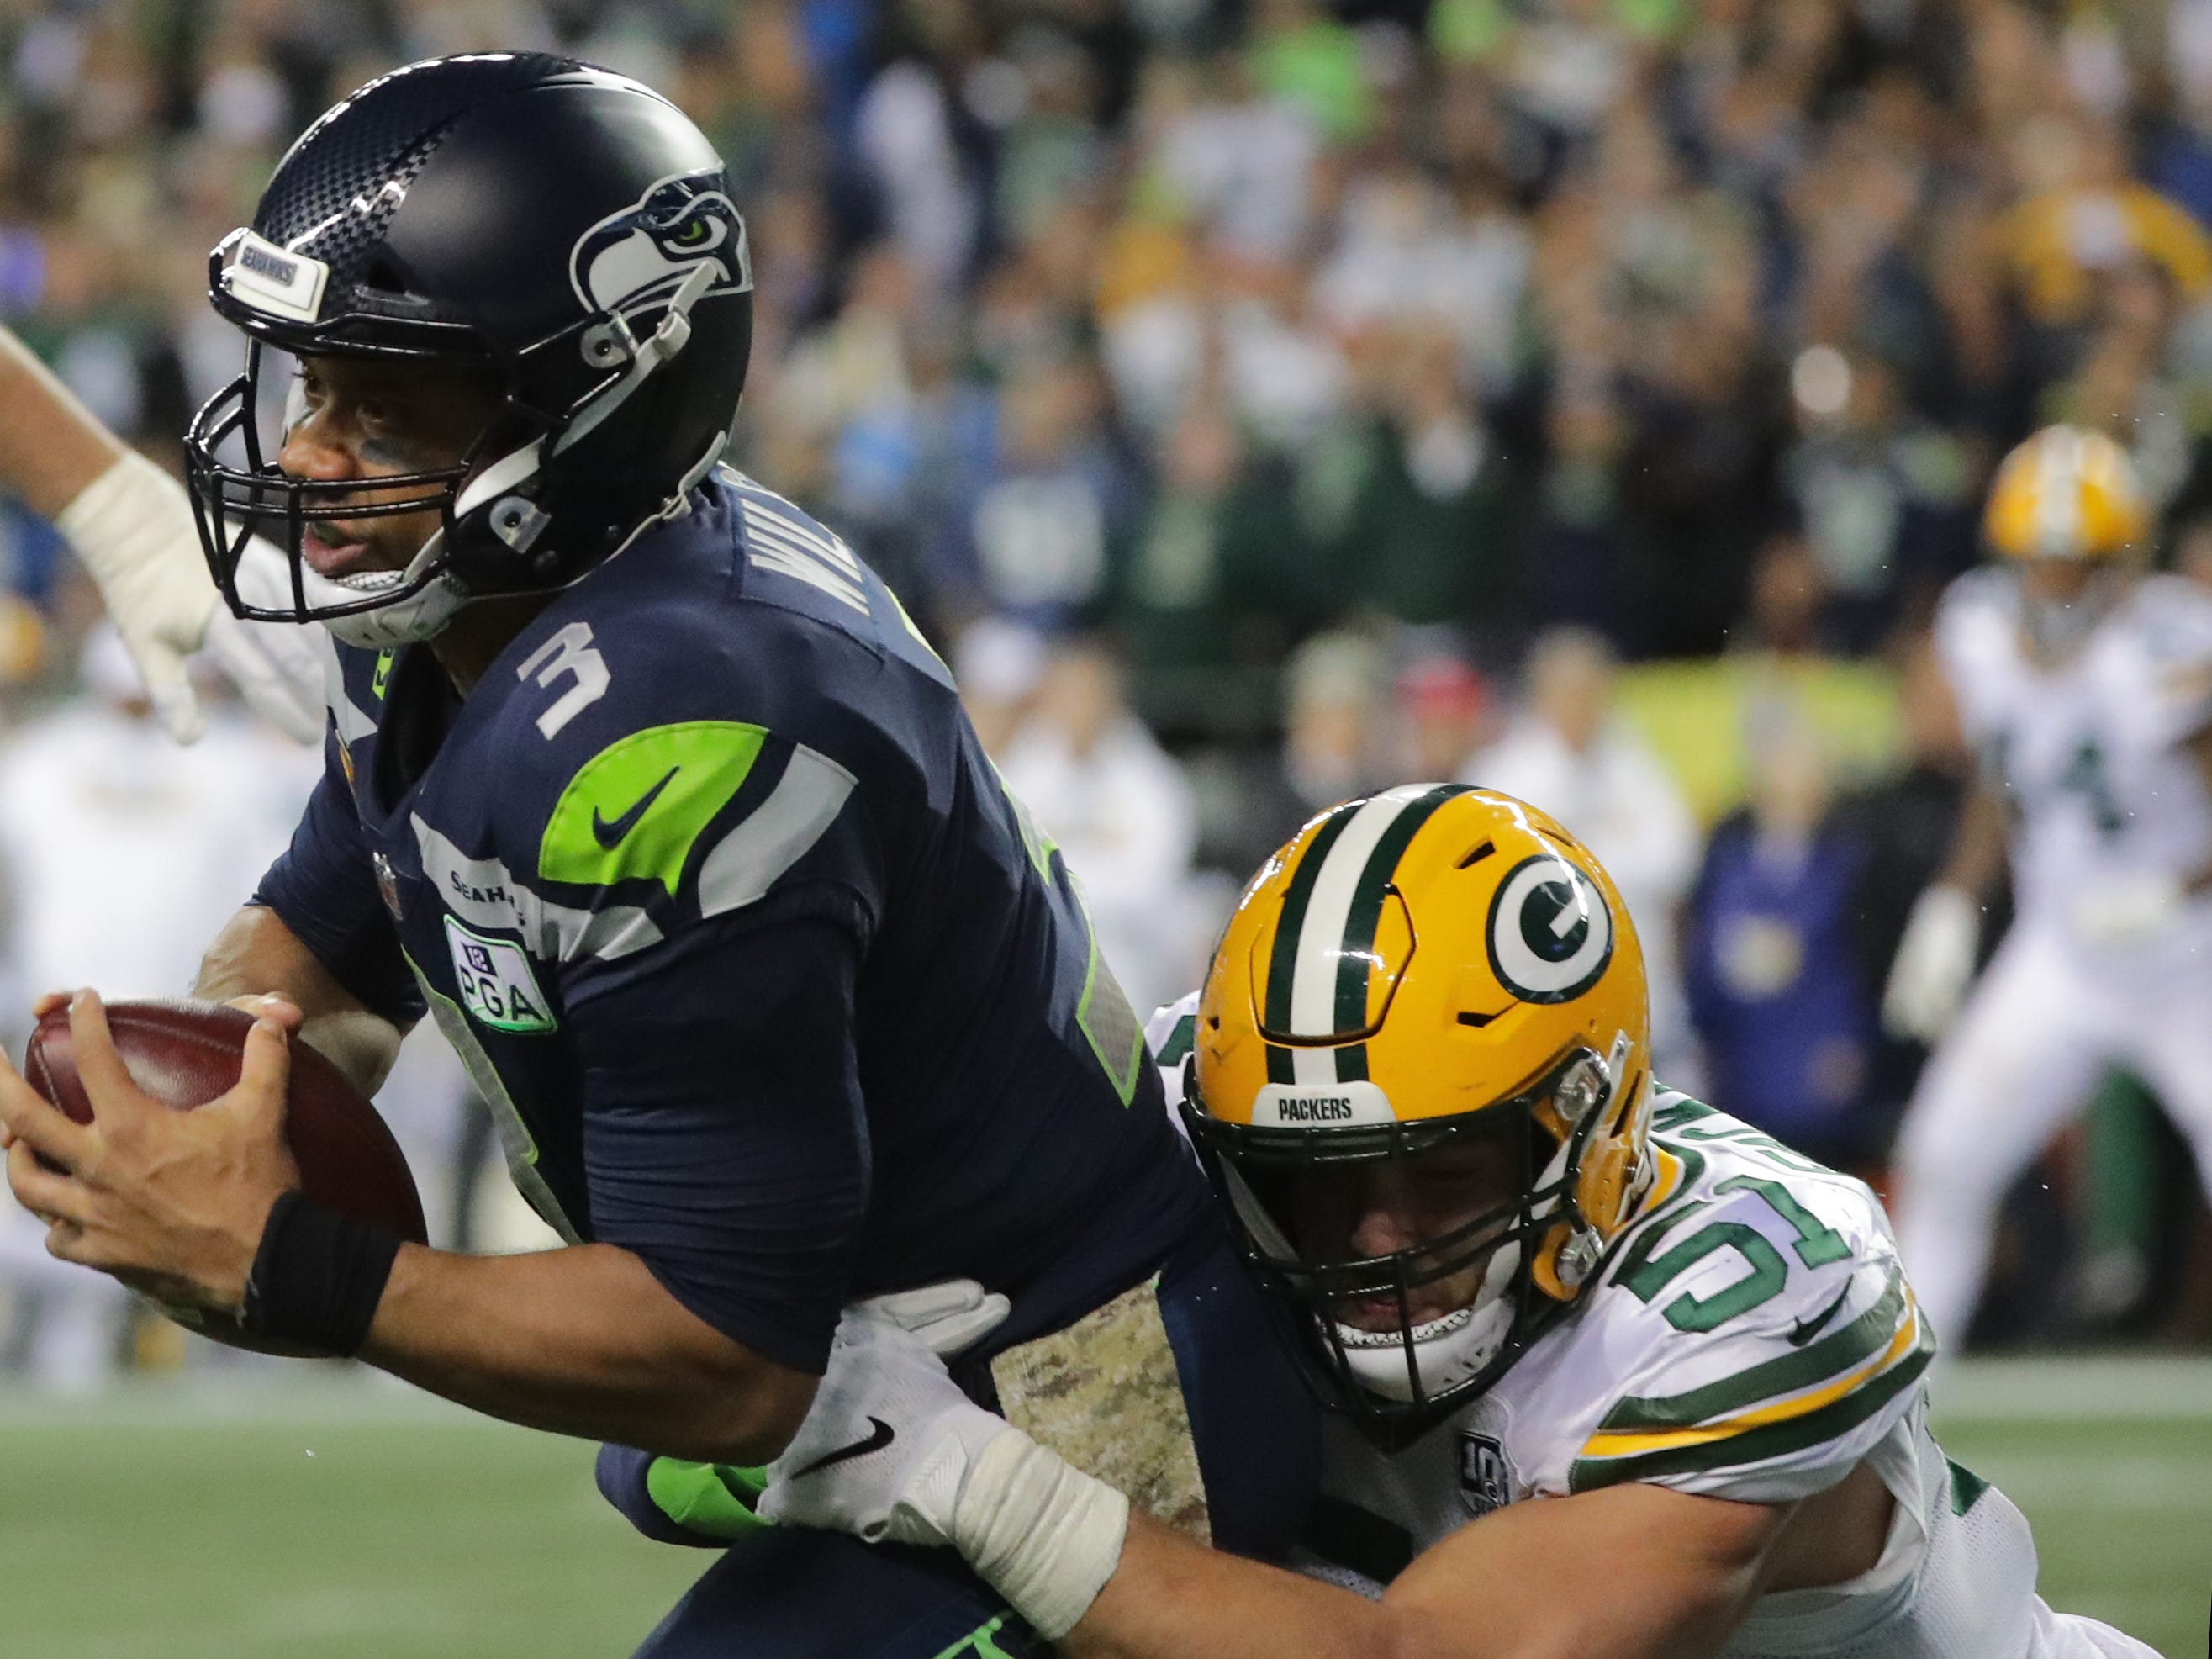 Seattle Seahawks quarterback Russell Wilson (3) manages to throw away the ball to avoid a sack by Green Bay Packers linebacker Kyler Fackrell (51) during the third  quarter of their game Thursday, November 25, 2018 at CenturyLink Field in Seattle, Wash.